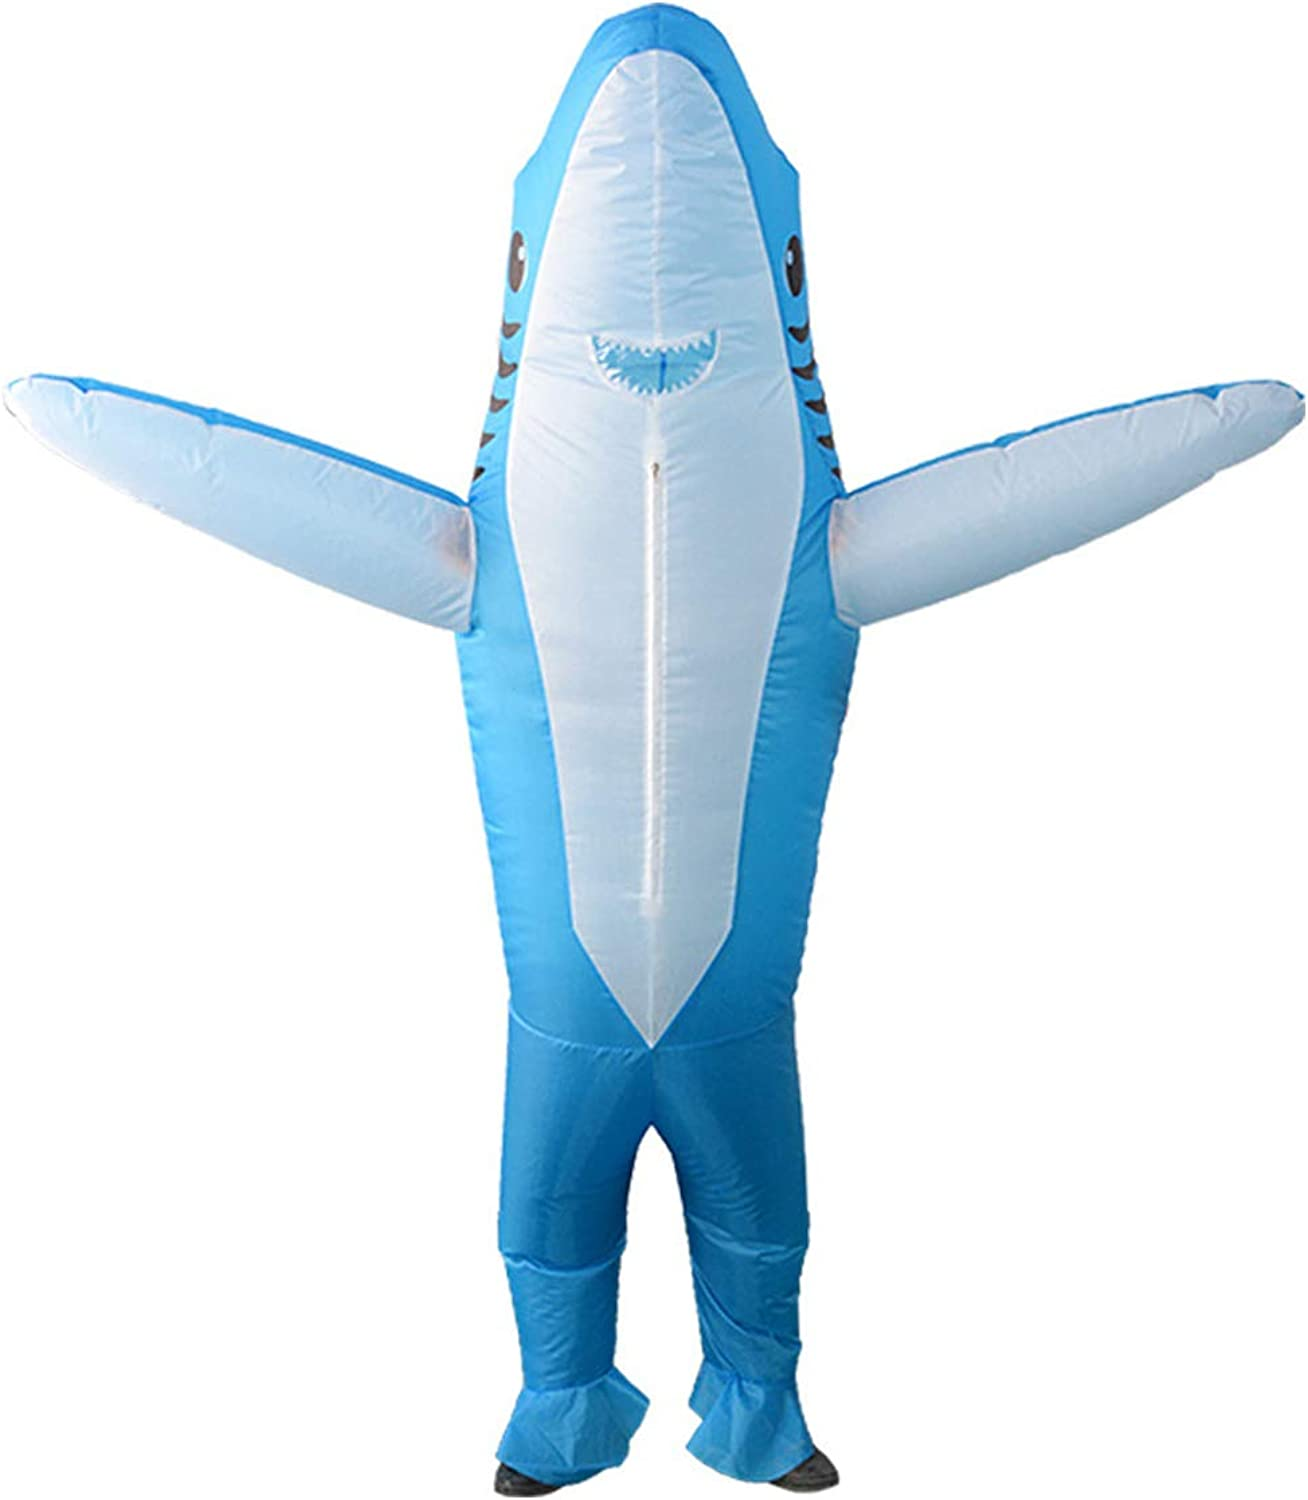 Qshine Inflatable Shark Cosplay Costume Halloween Funny Cartoon Animal Blow up Suit Adult